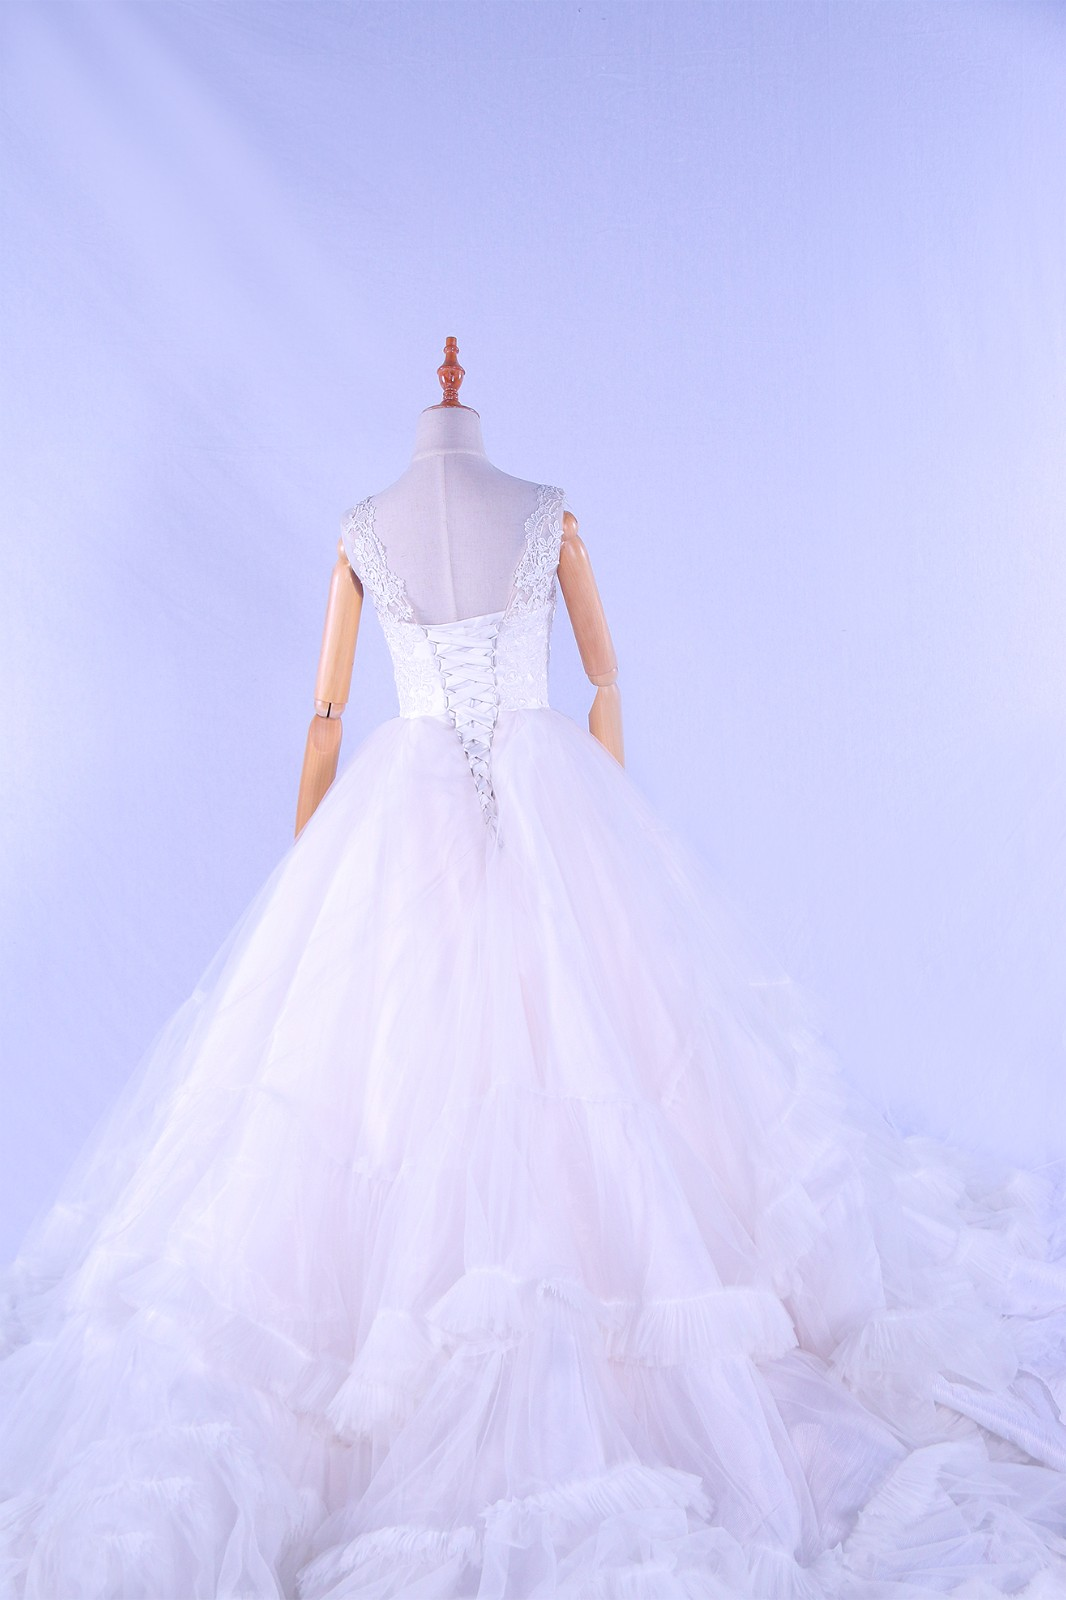 Spring 2018 Wedding Dress Fiber Optic Gown Led Glowing Dress Light Up Bridal